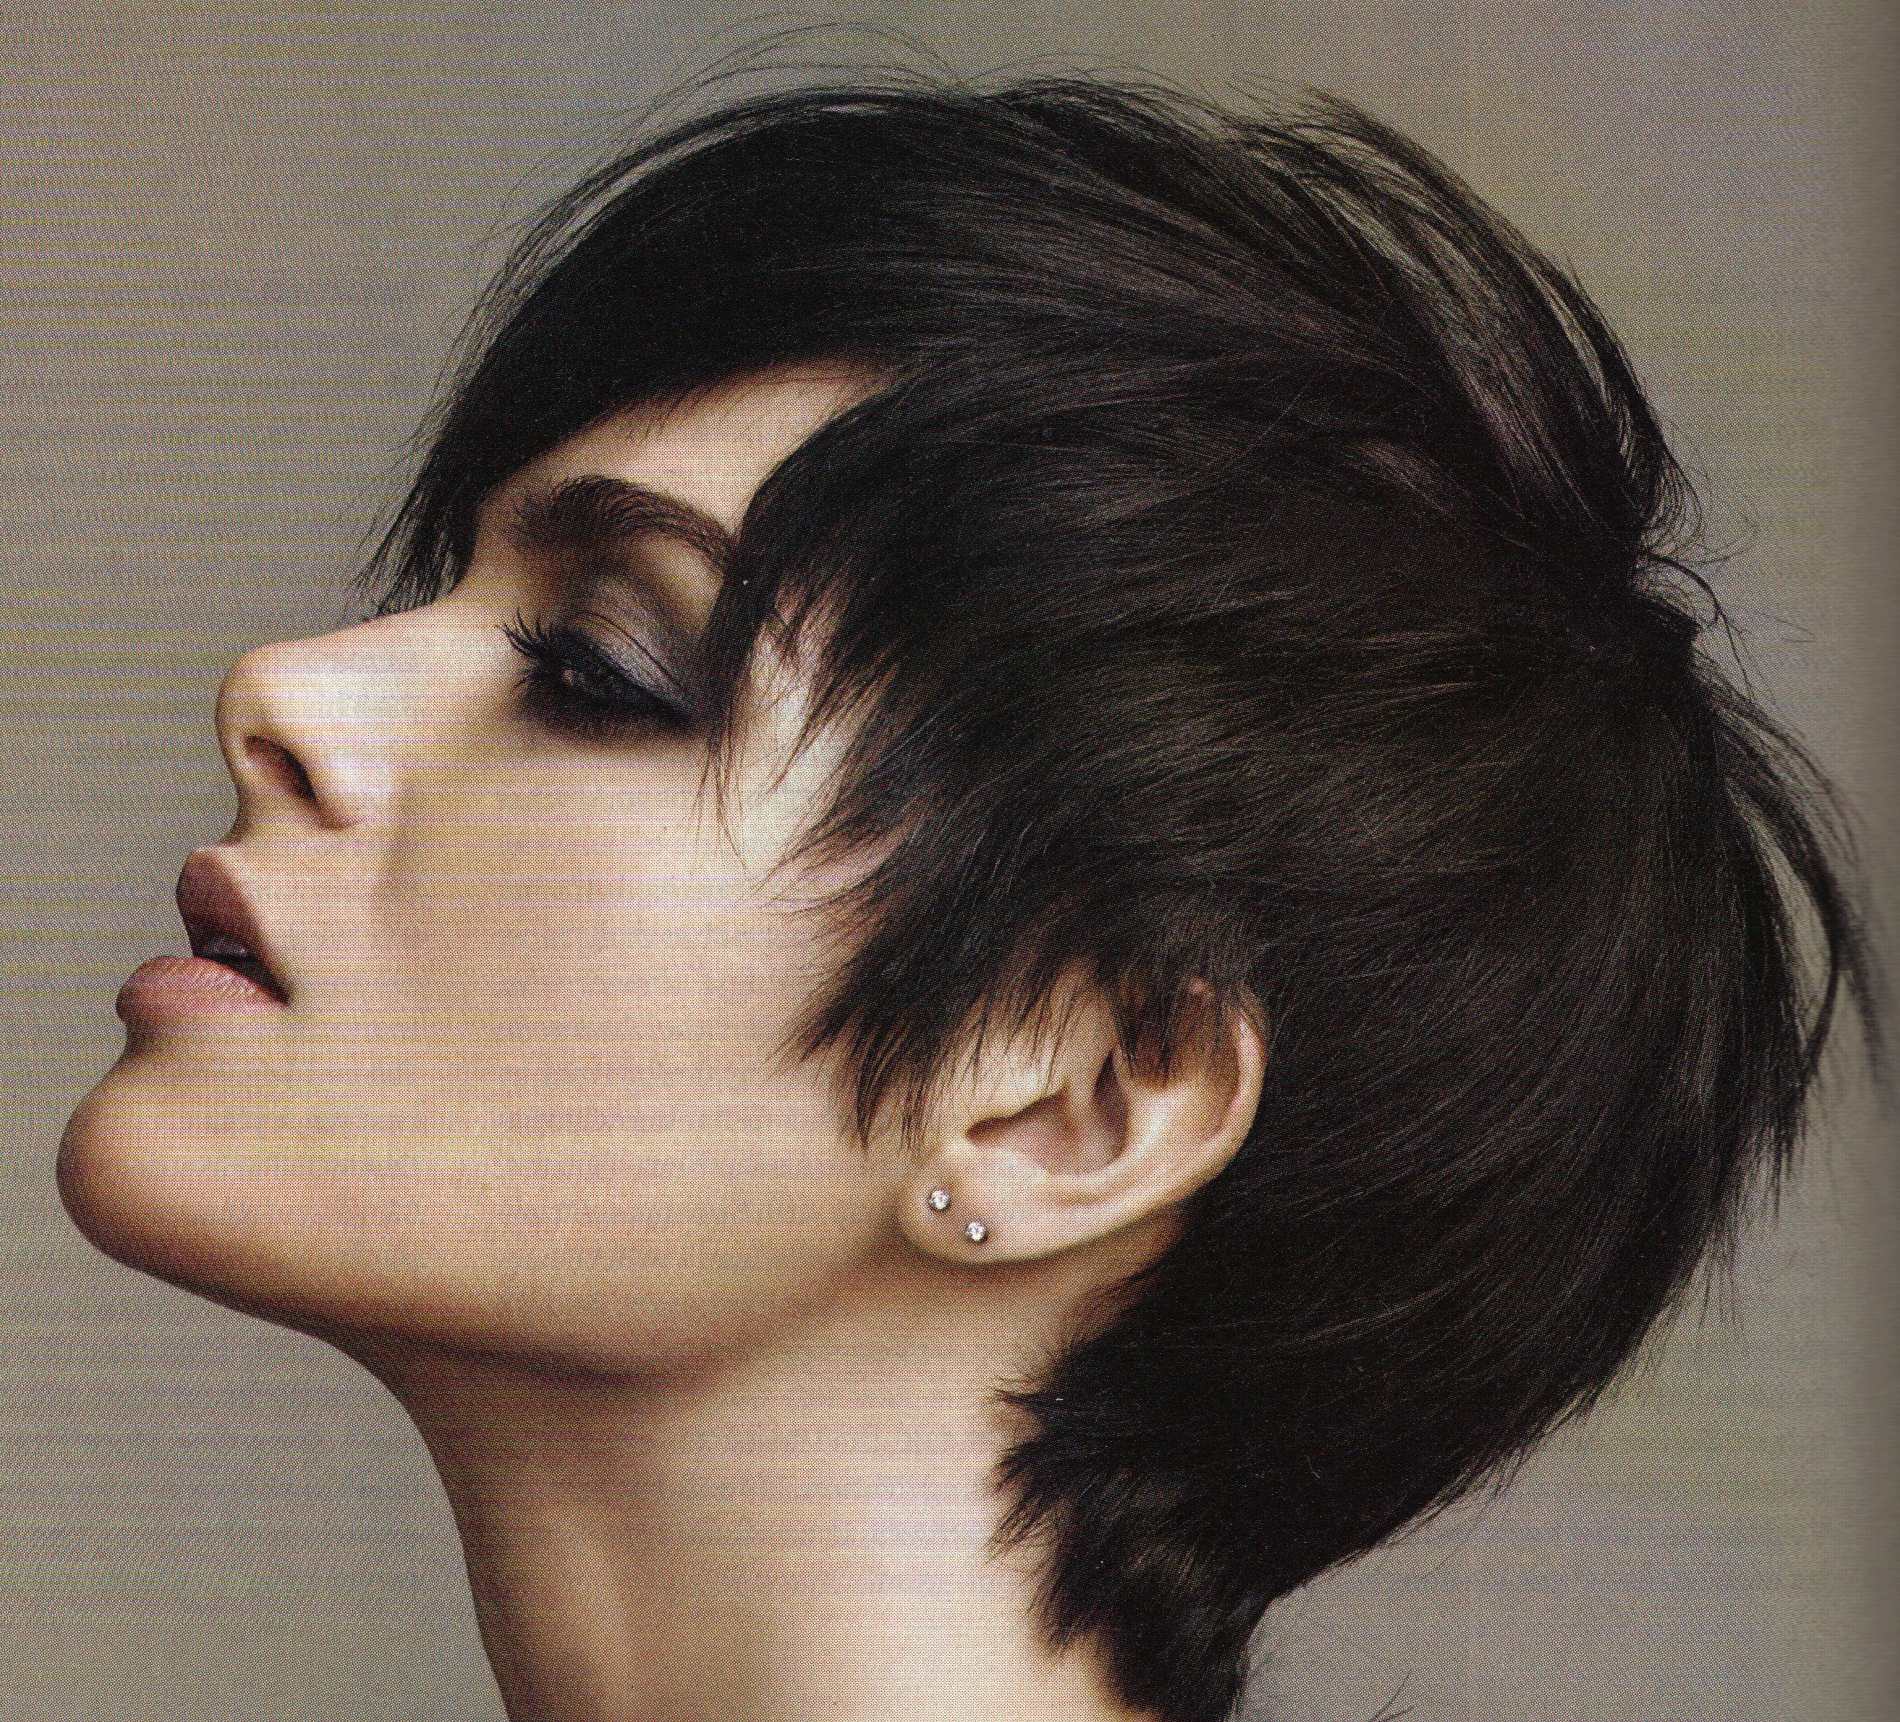 Shagged Pixie - Short haircut styles for women